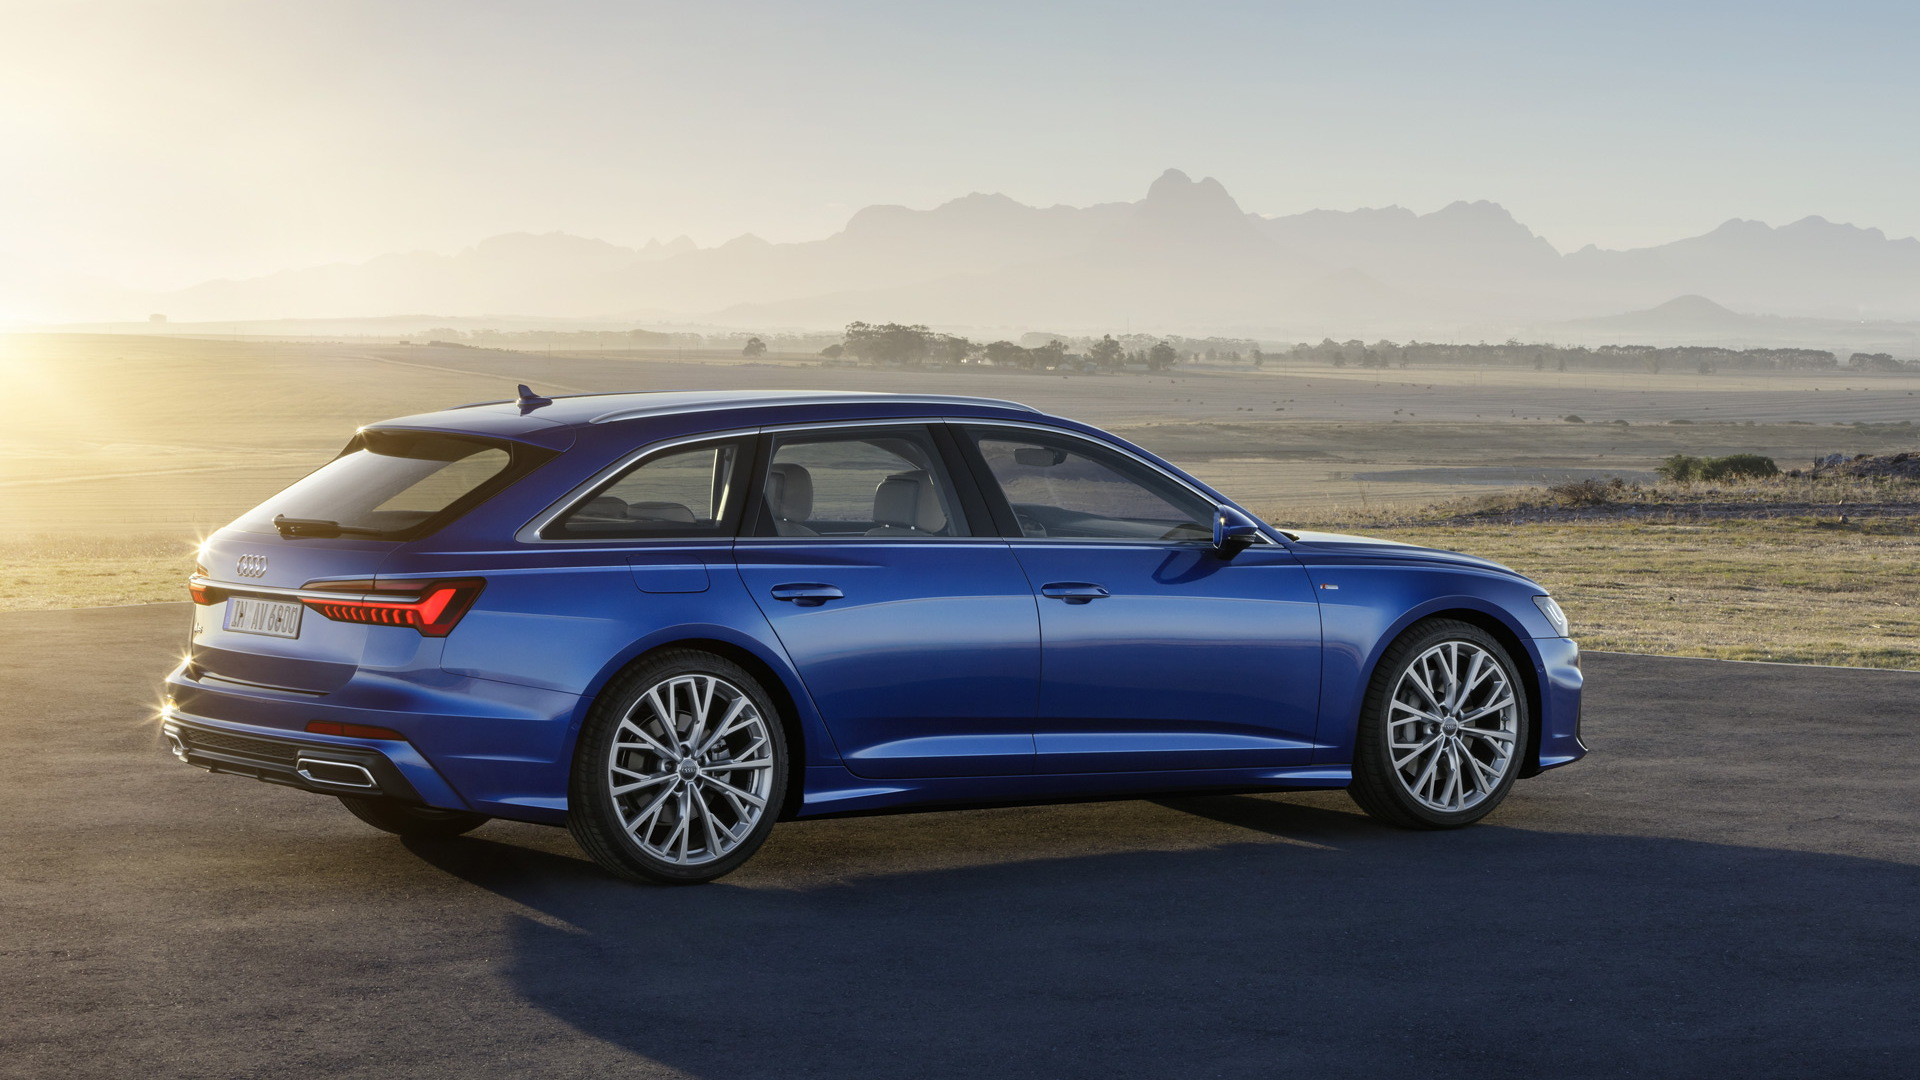 2019 audi a6 avant wagon revealed for Lunghezza audi a6 avant 2016